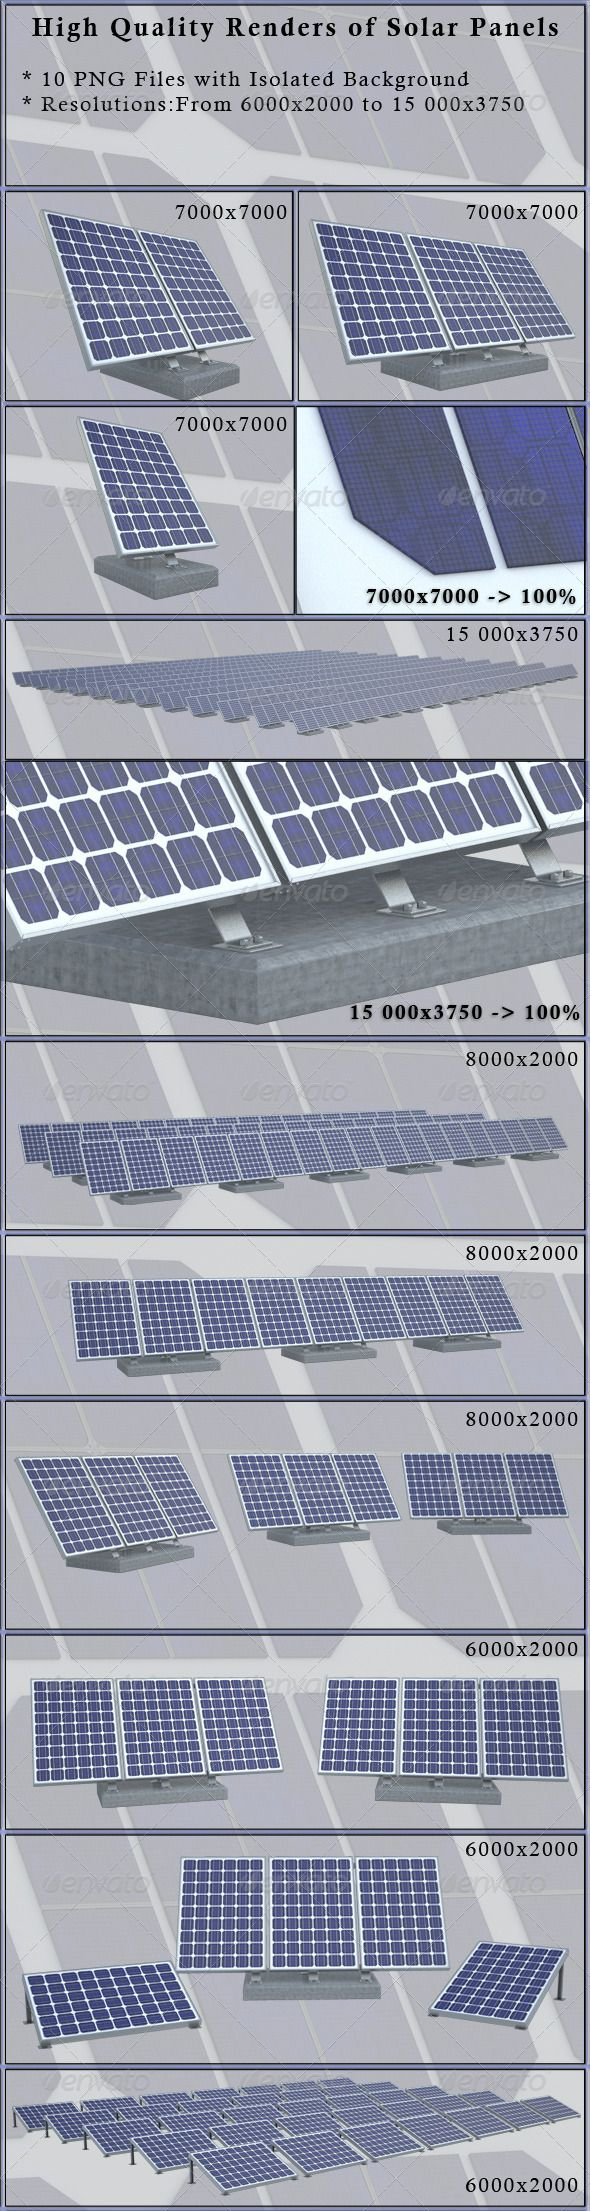 Solar Panels  #GraphicRiver         10 high quality renders of solar panels. The main archive include: 10 png files without background. Resolutions: Image01 – 7000×7000 image02 – 7000×7000 image03 – 7000×7000 image04 – 15 000×3750 image05 – 8000×2000 image06 – 8000×2000 image07 – 8000×2000 image08 – 6000×2000 image09 – 6000×2000 image10 – 6000×2000  	 My Latest Projects  	         	 Wall Picture Mock-Ups  	       	  Other Mock-Ups   	        	 Car Mock-Ups  	                           	 3D…